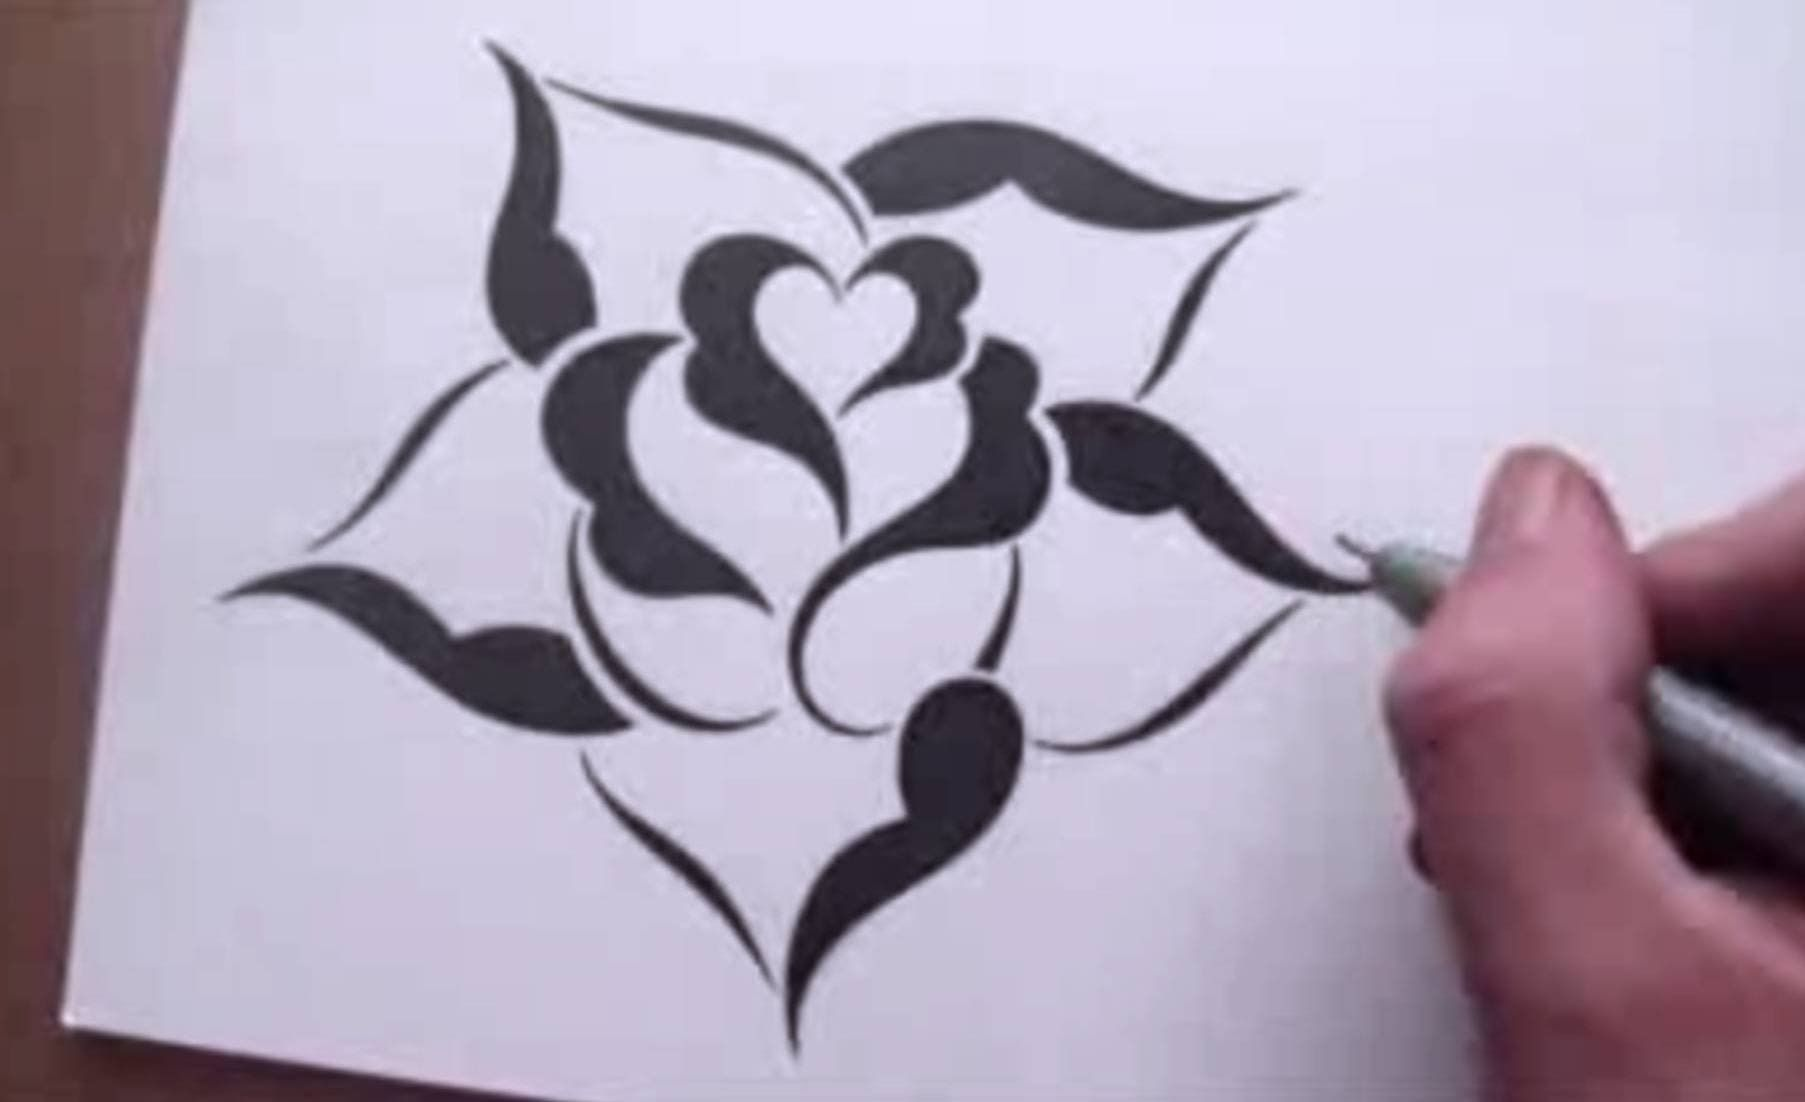 601c8c522 Drawing a Rose in a Simple Stencil Design Style - YouTube ...